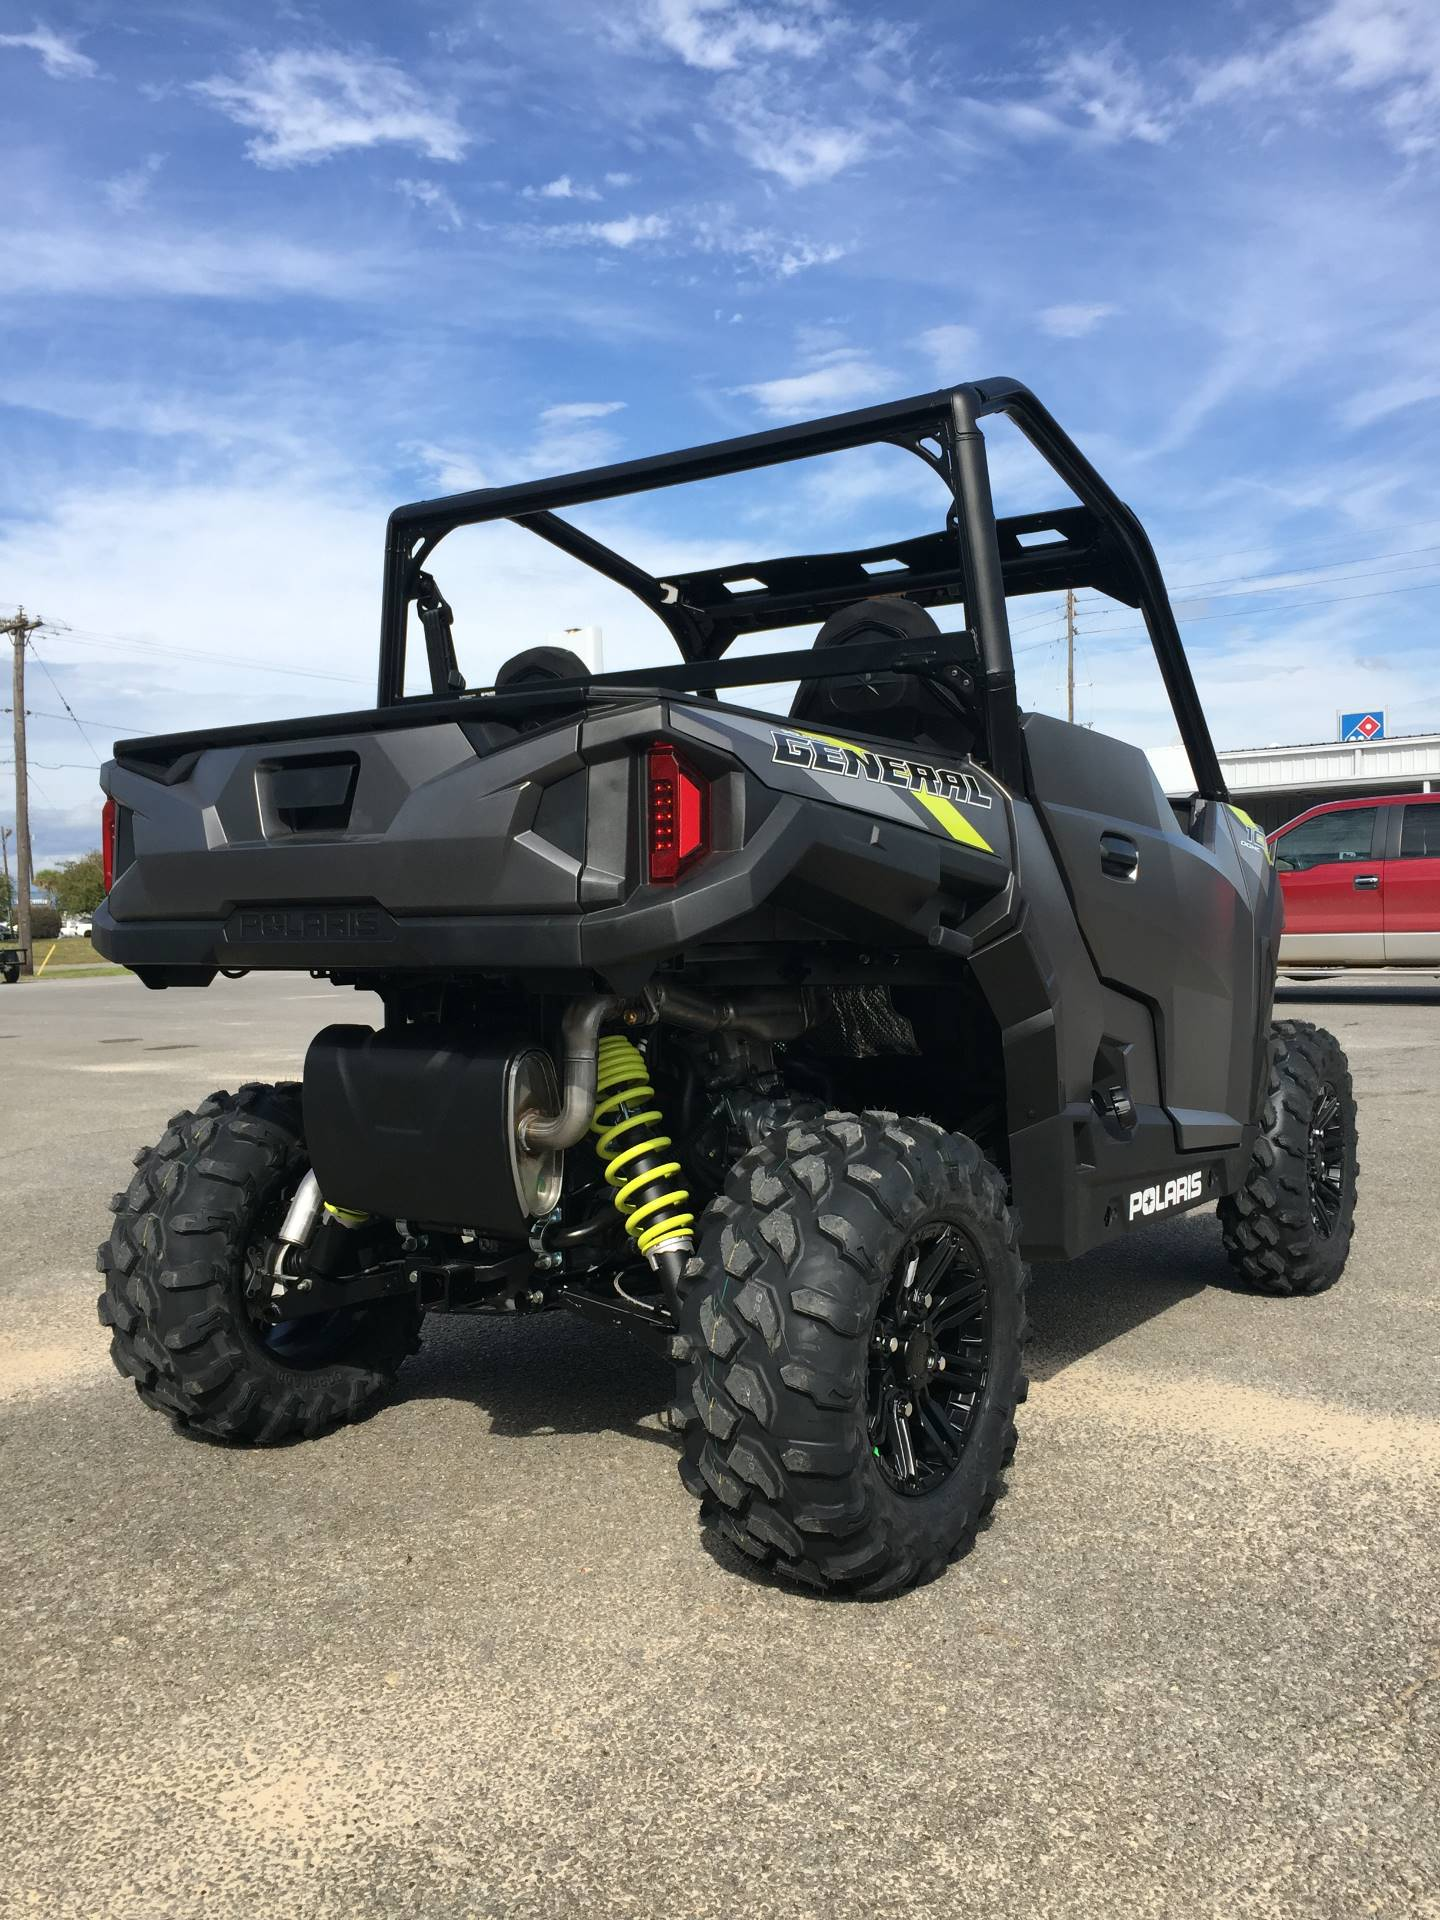 2020 Polaris General 1000 Premium in Pascagoula, Mississippi - Photo 3